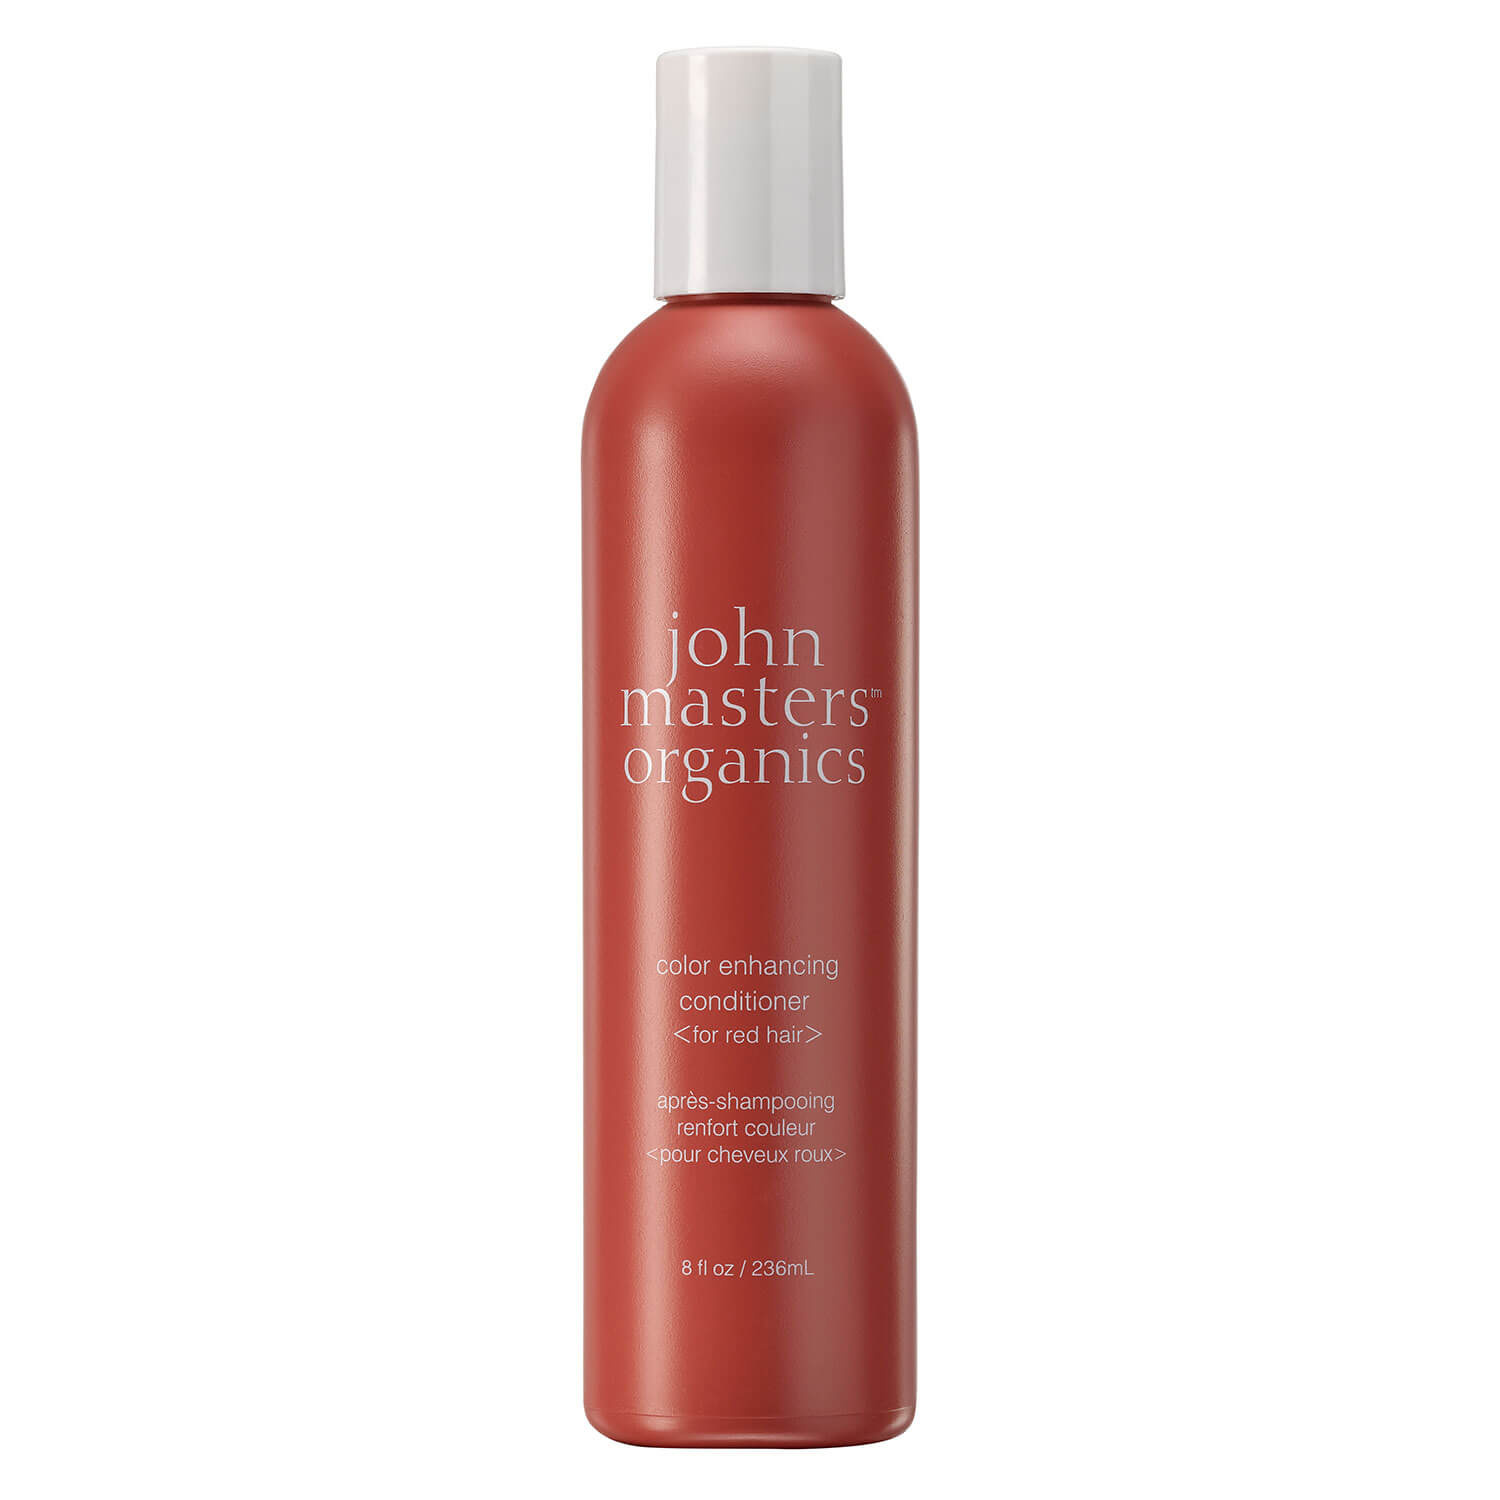 JMO Hair Care - Color Enhancing Red - 236ml